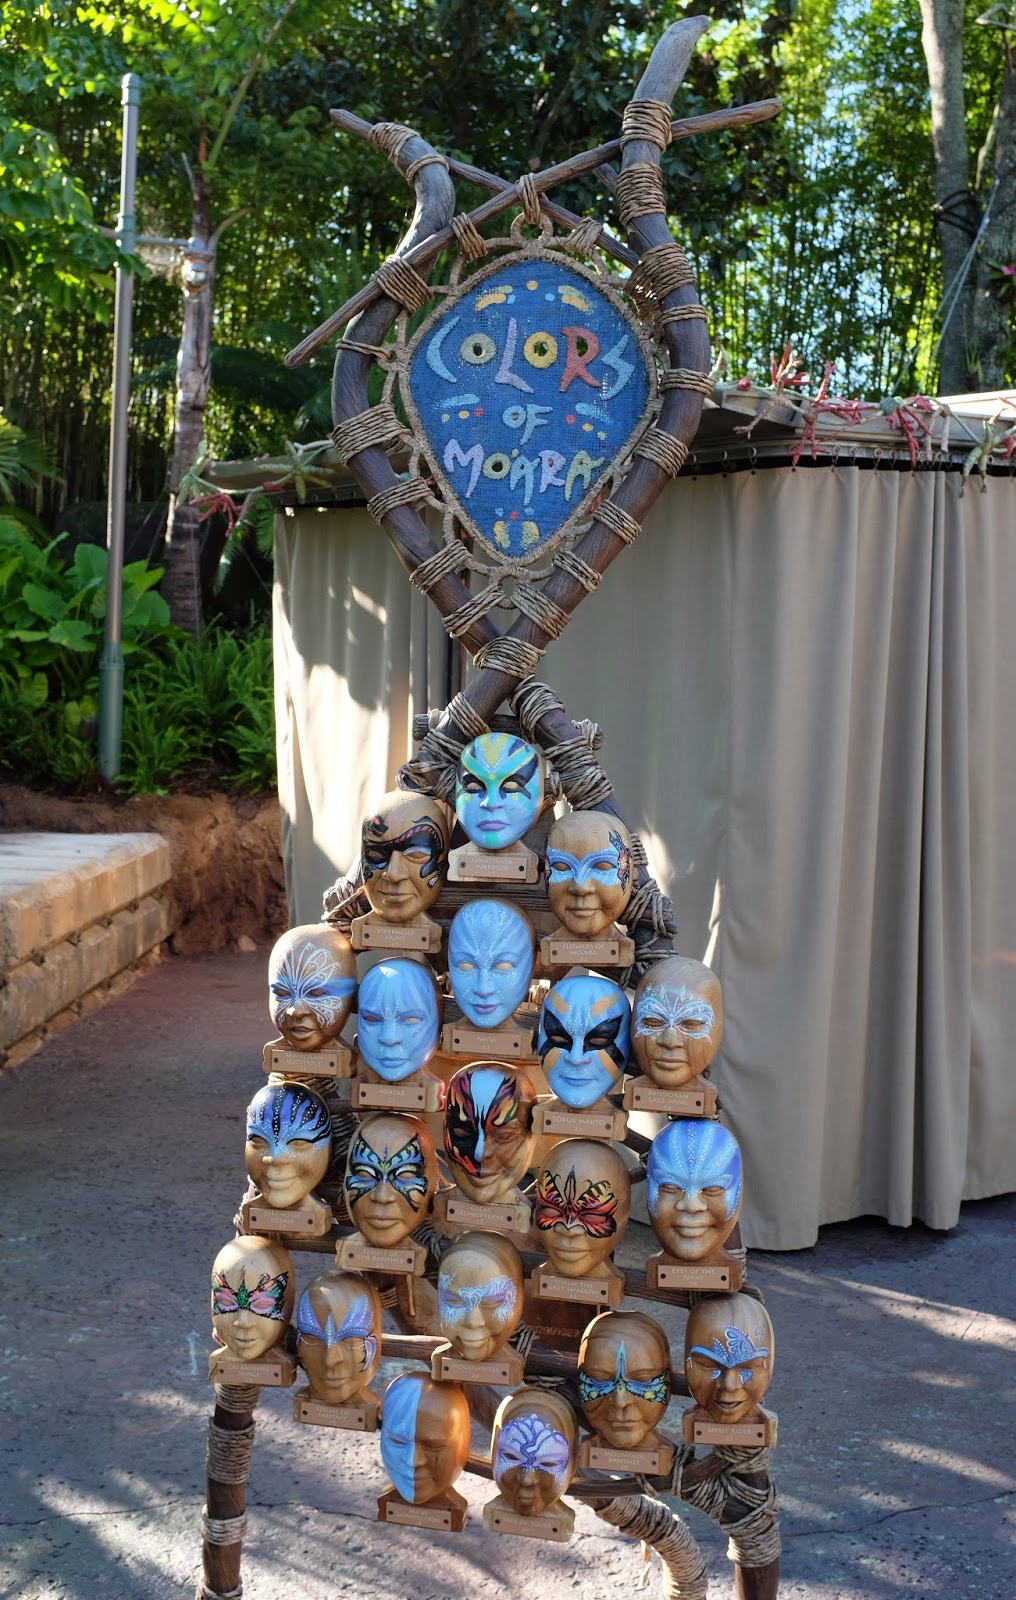 Colors of Moara, Pandora - The World of Avatar at Disney's Animal Kingdom